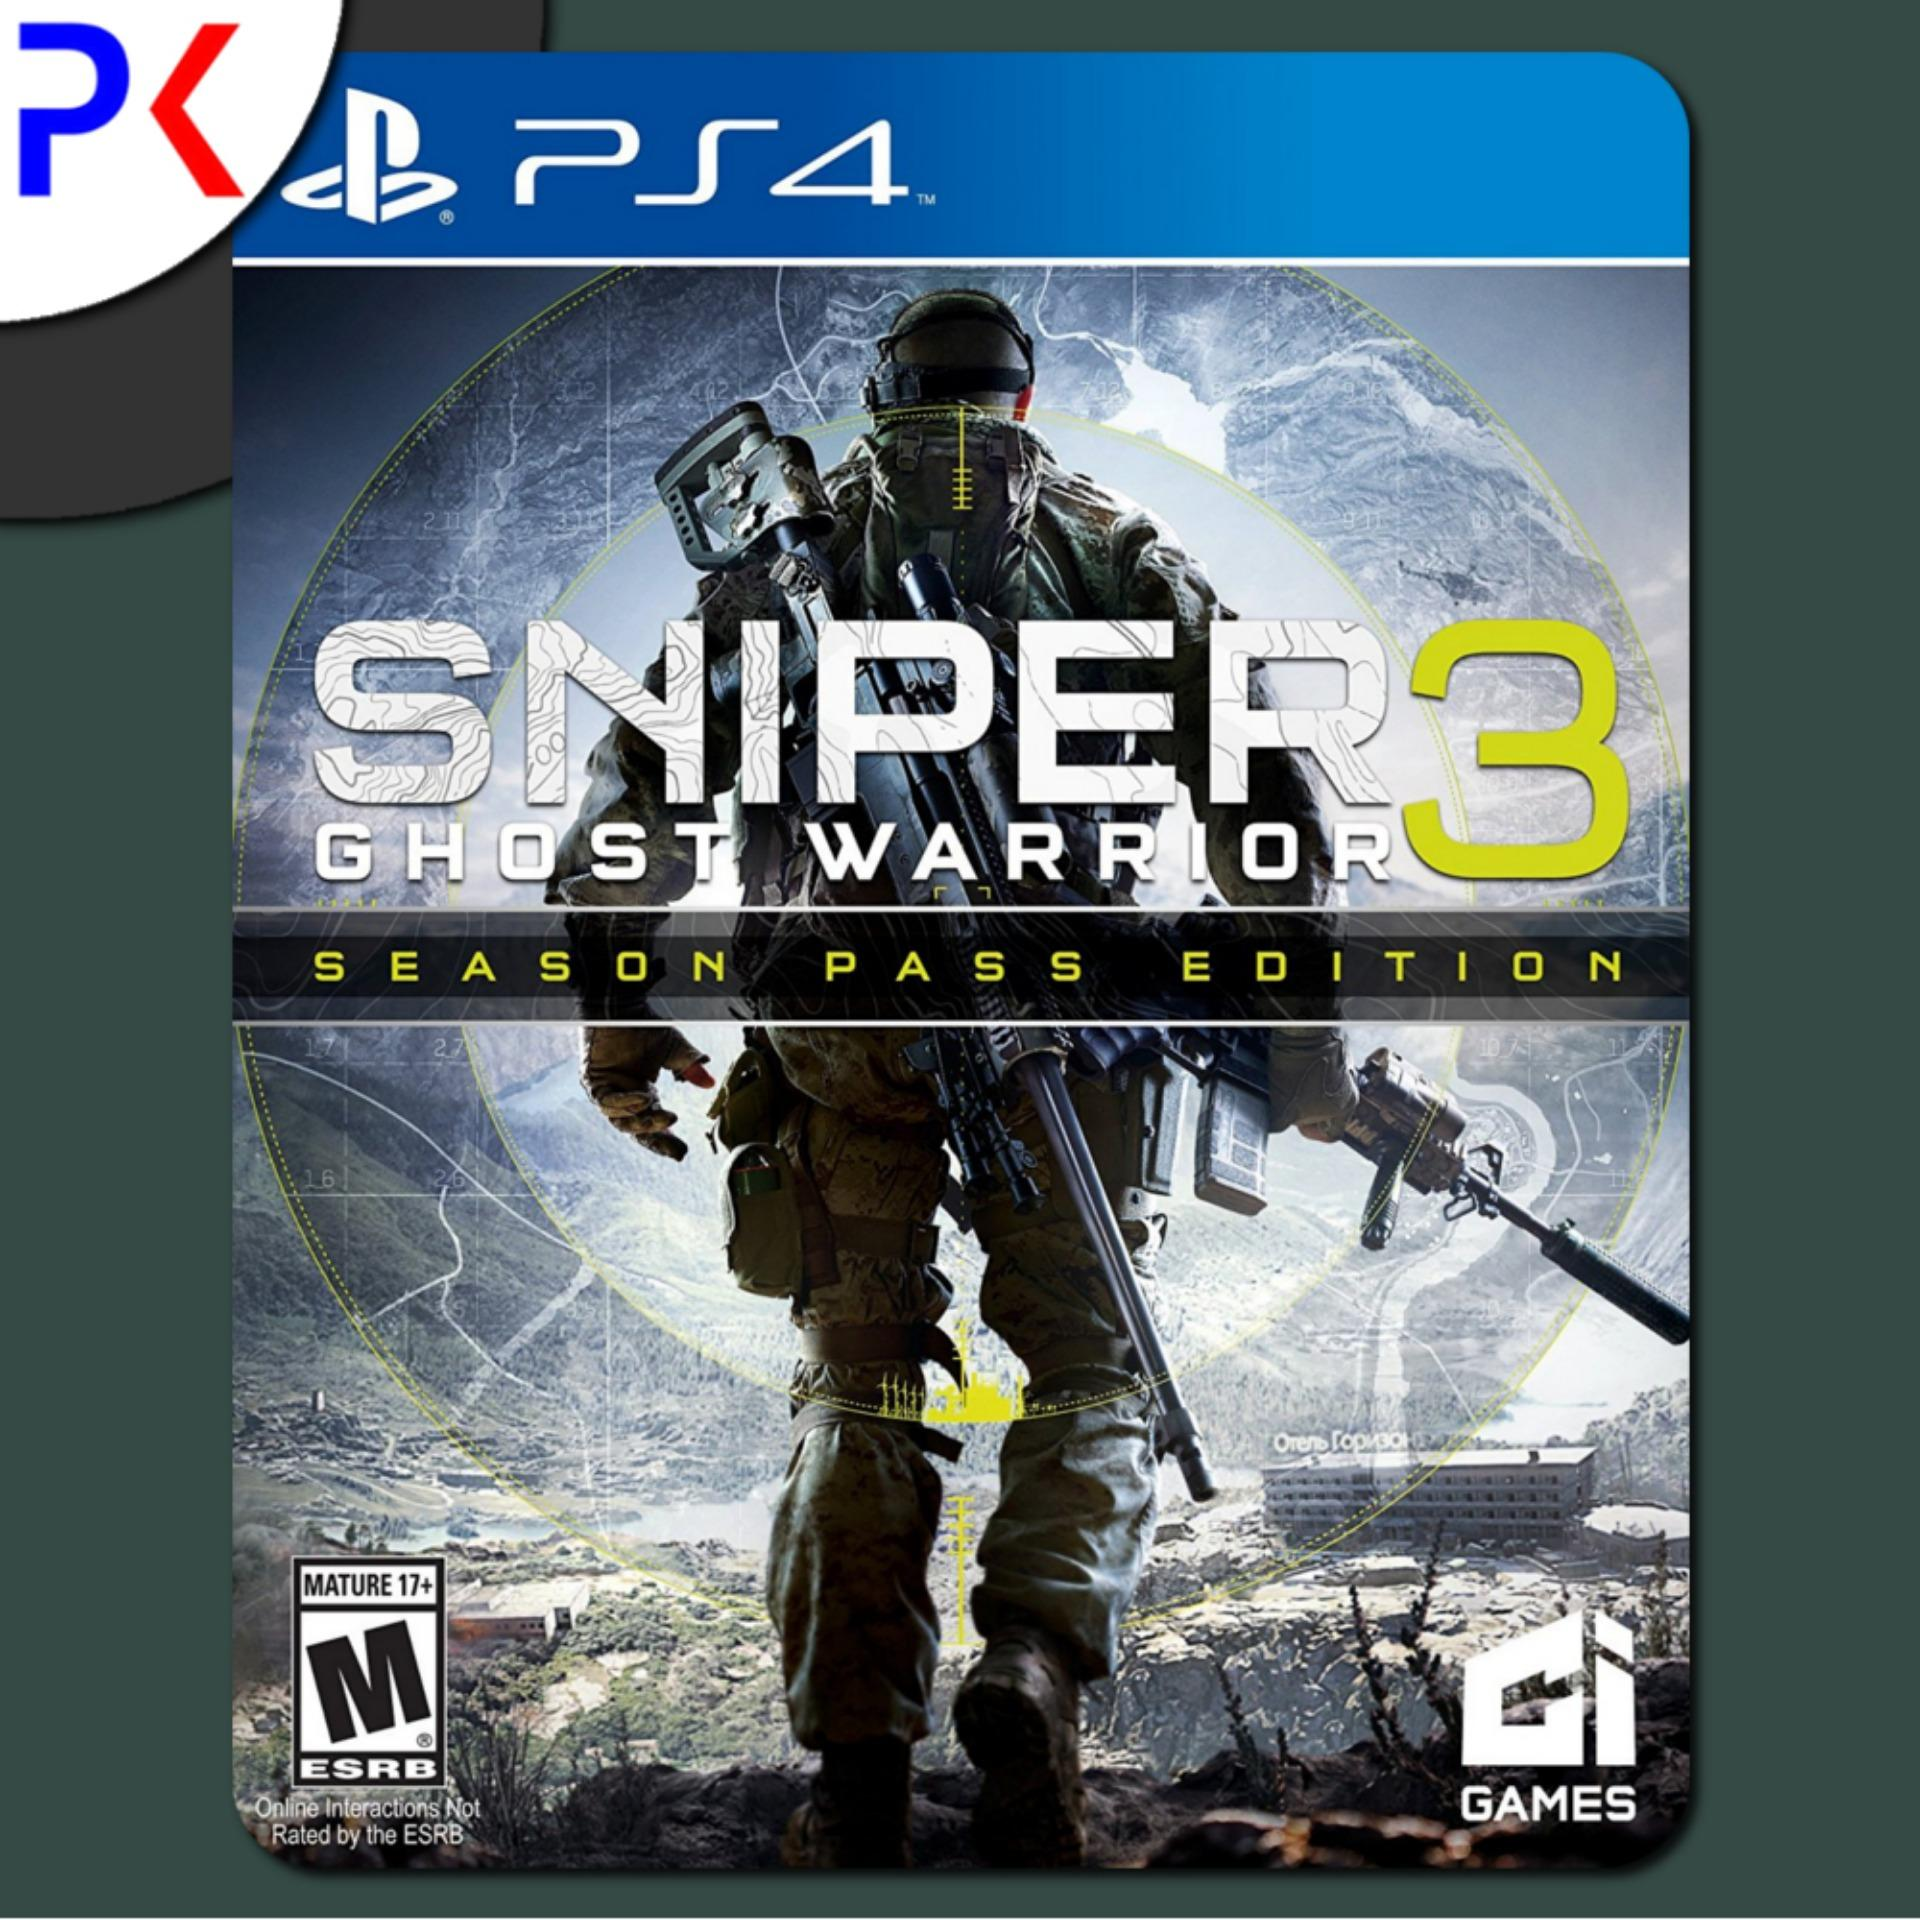 Buy Online Psp Games Best Sellers Lazada Game Ps4 Persona 5 Region 3 English Sniper Ghost Warrior R3 Season Pass Edition